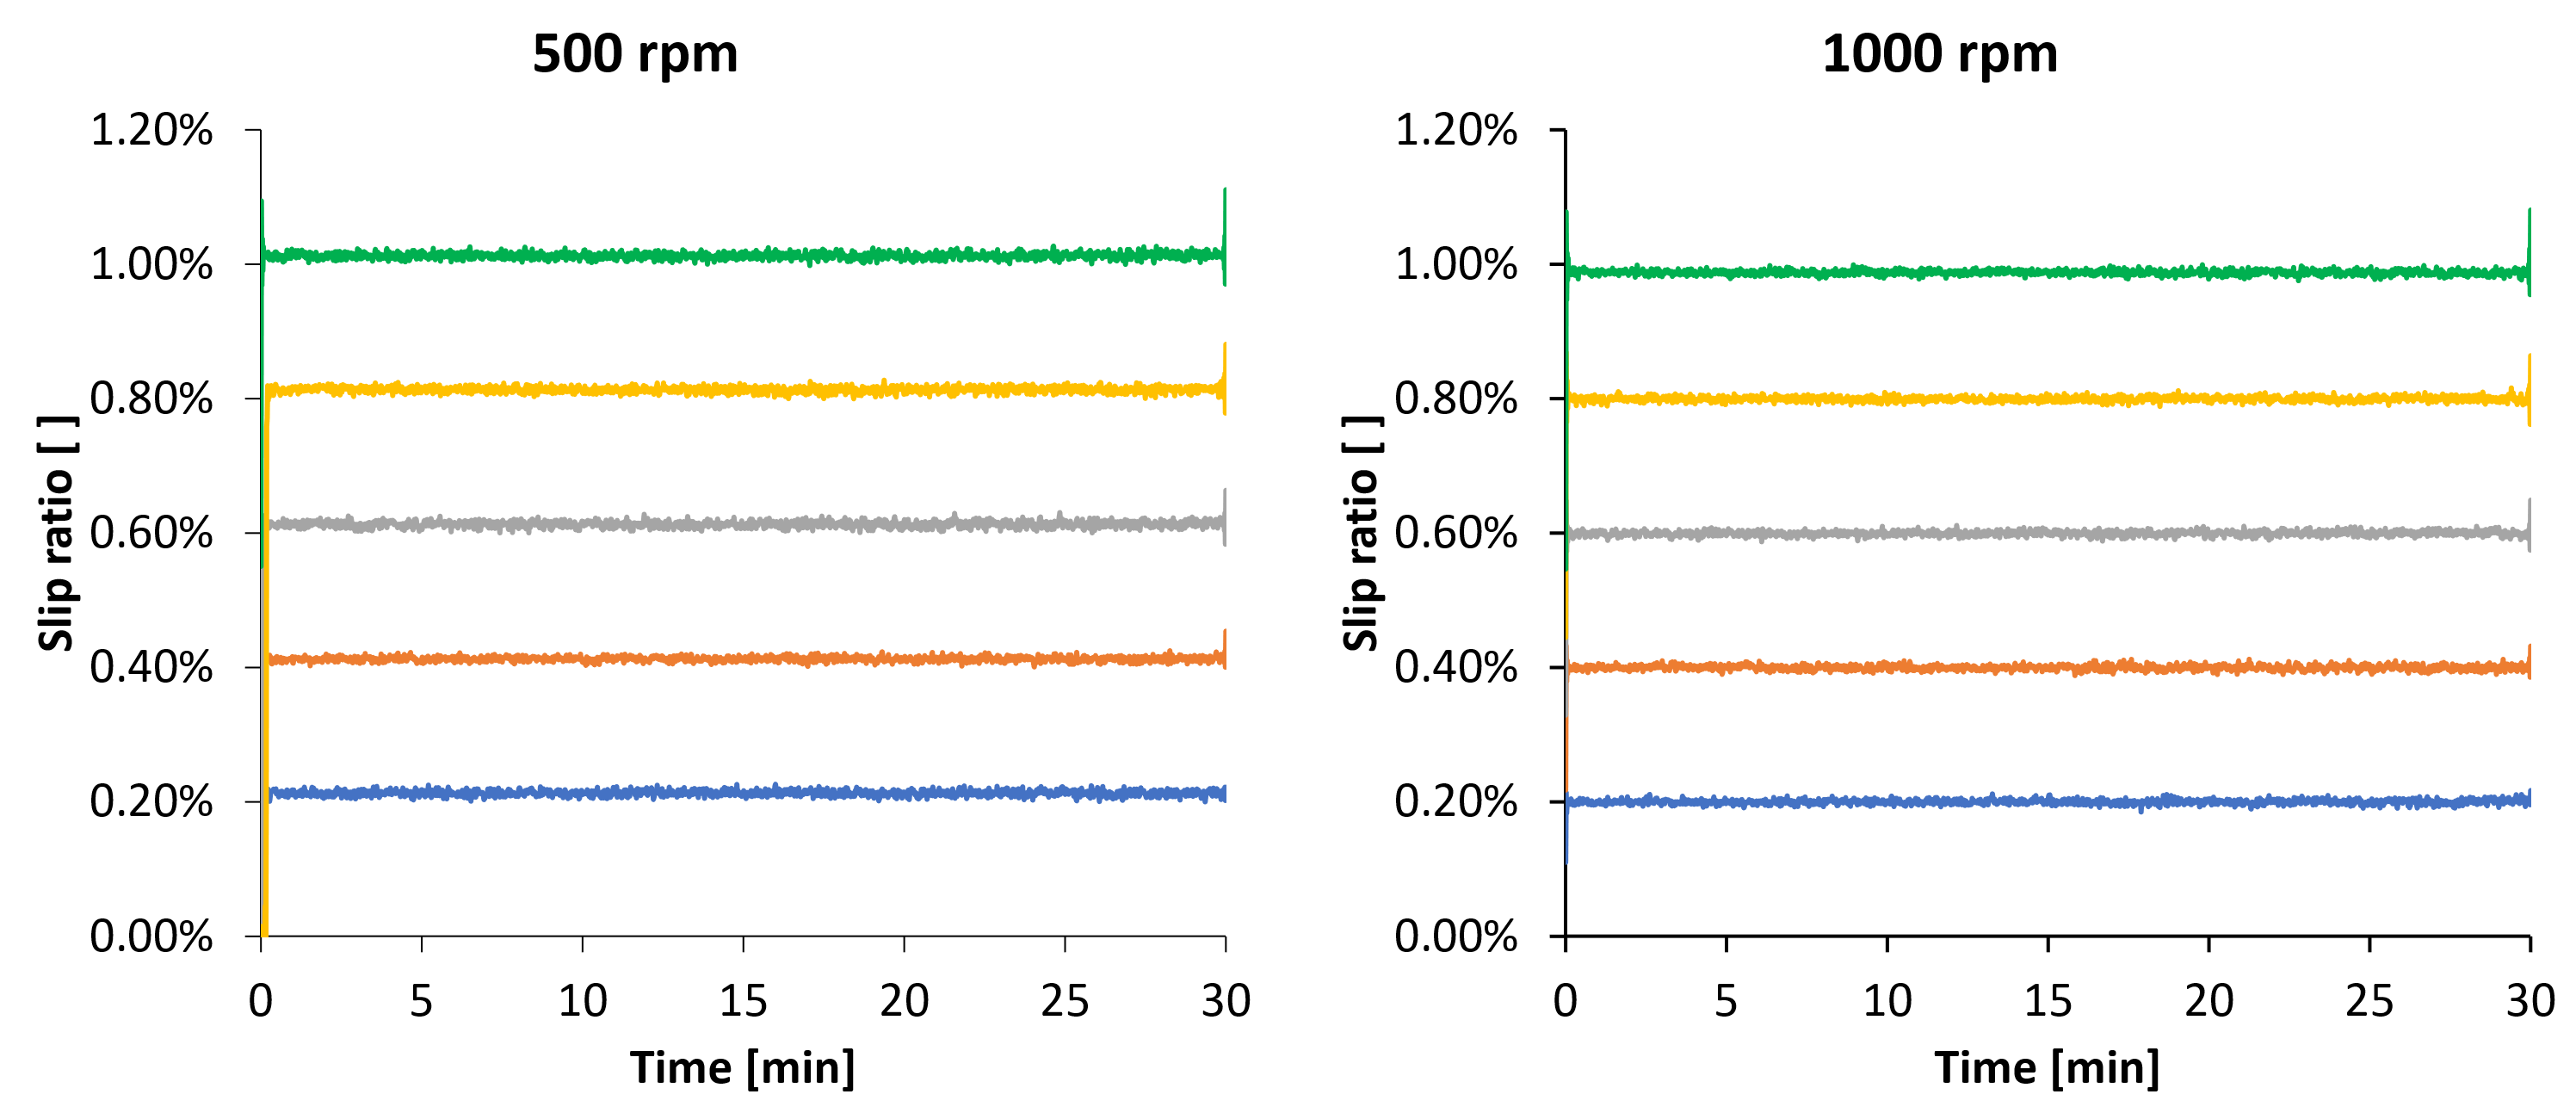 Evolution of the slip ratio against the test time for the tests run at 500 and 1000 rpm